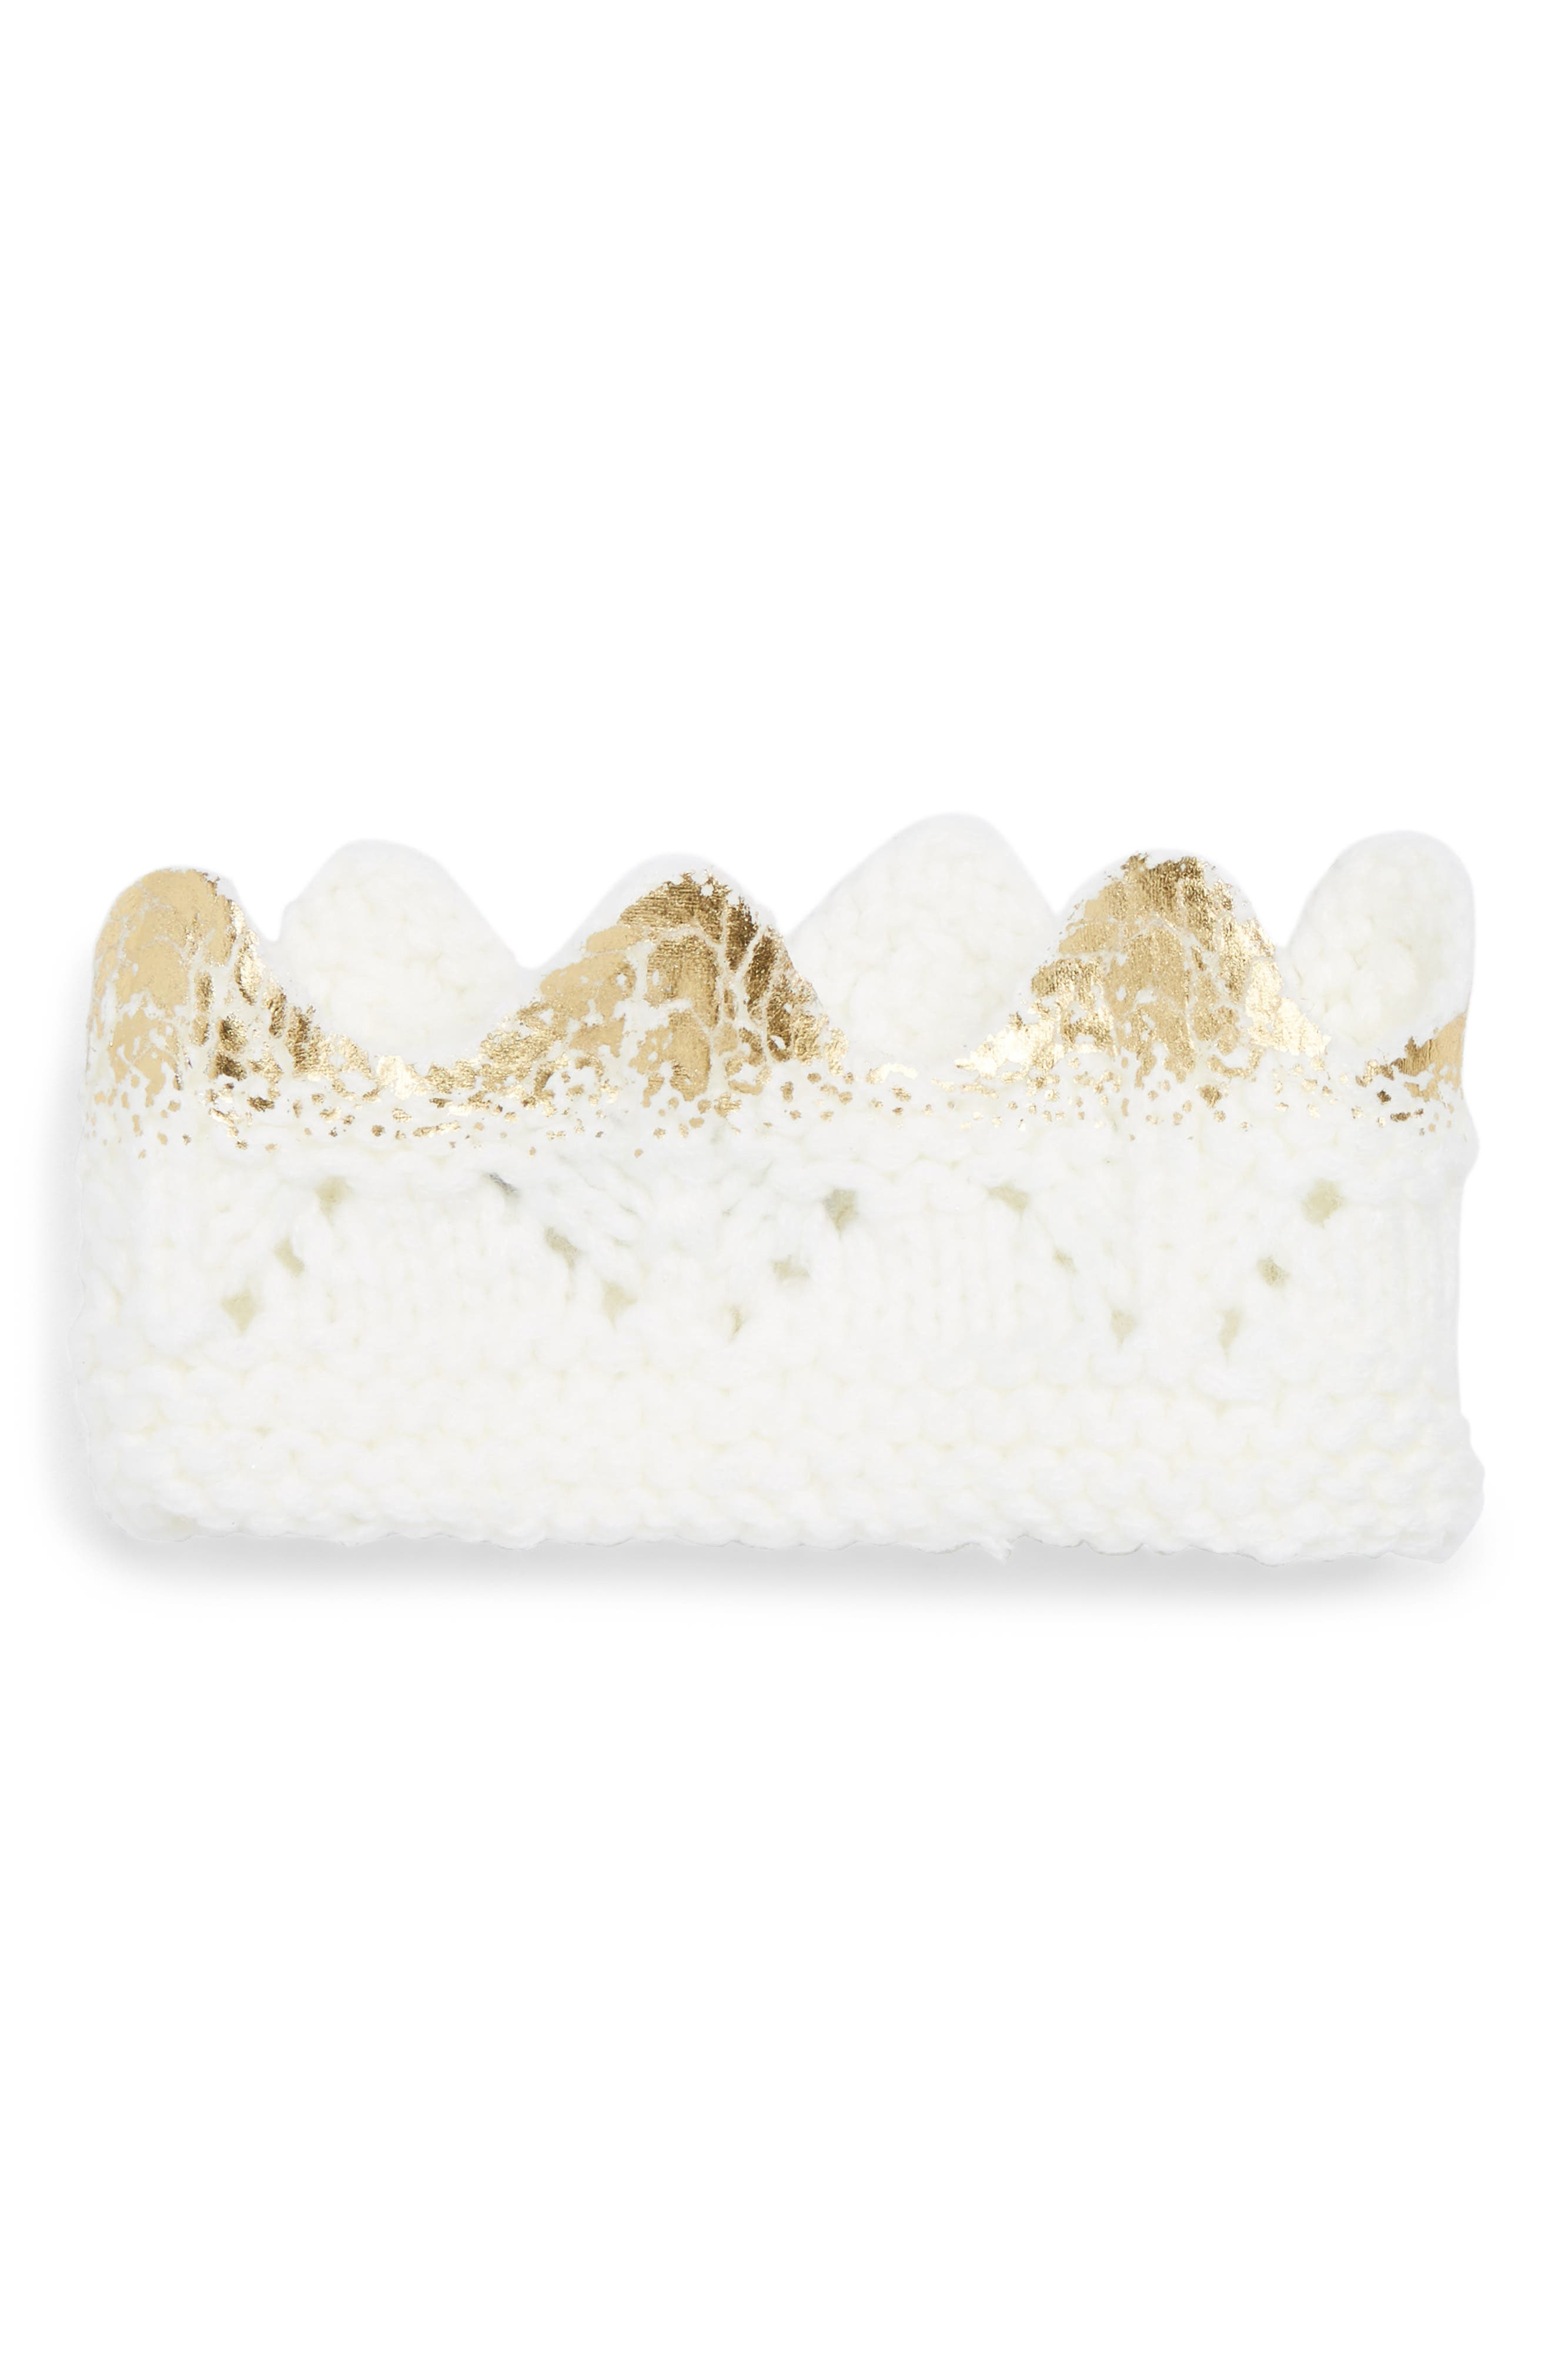 Aiden Knit Crown,                             Main thumbnail 1, color,                             Cream And Gold